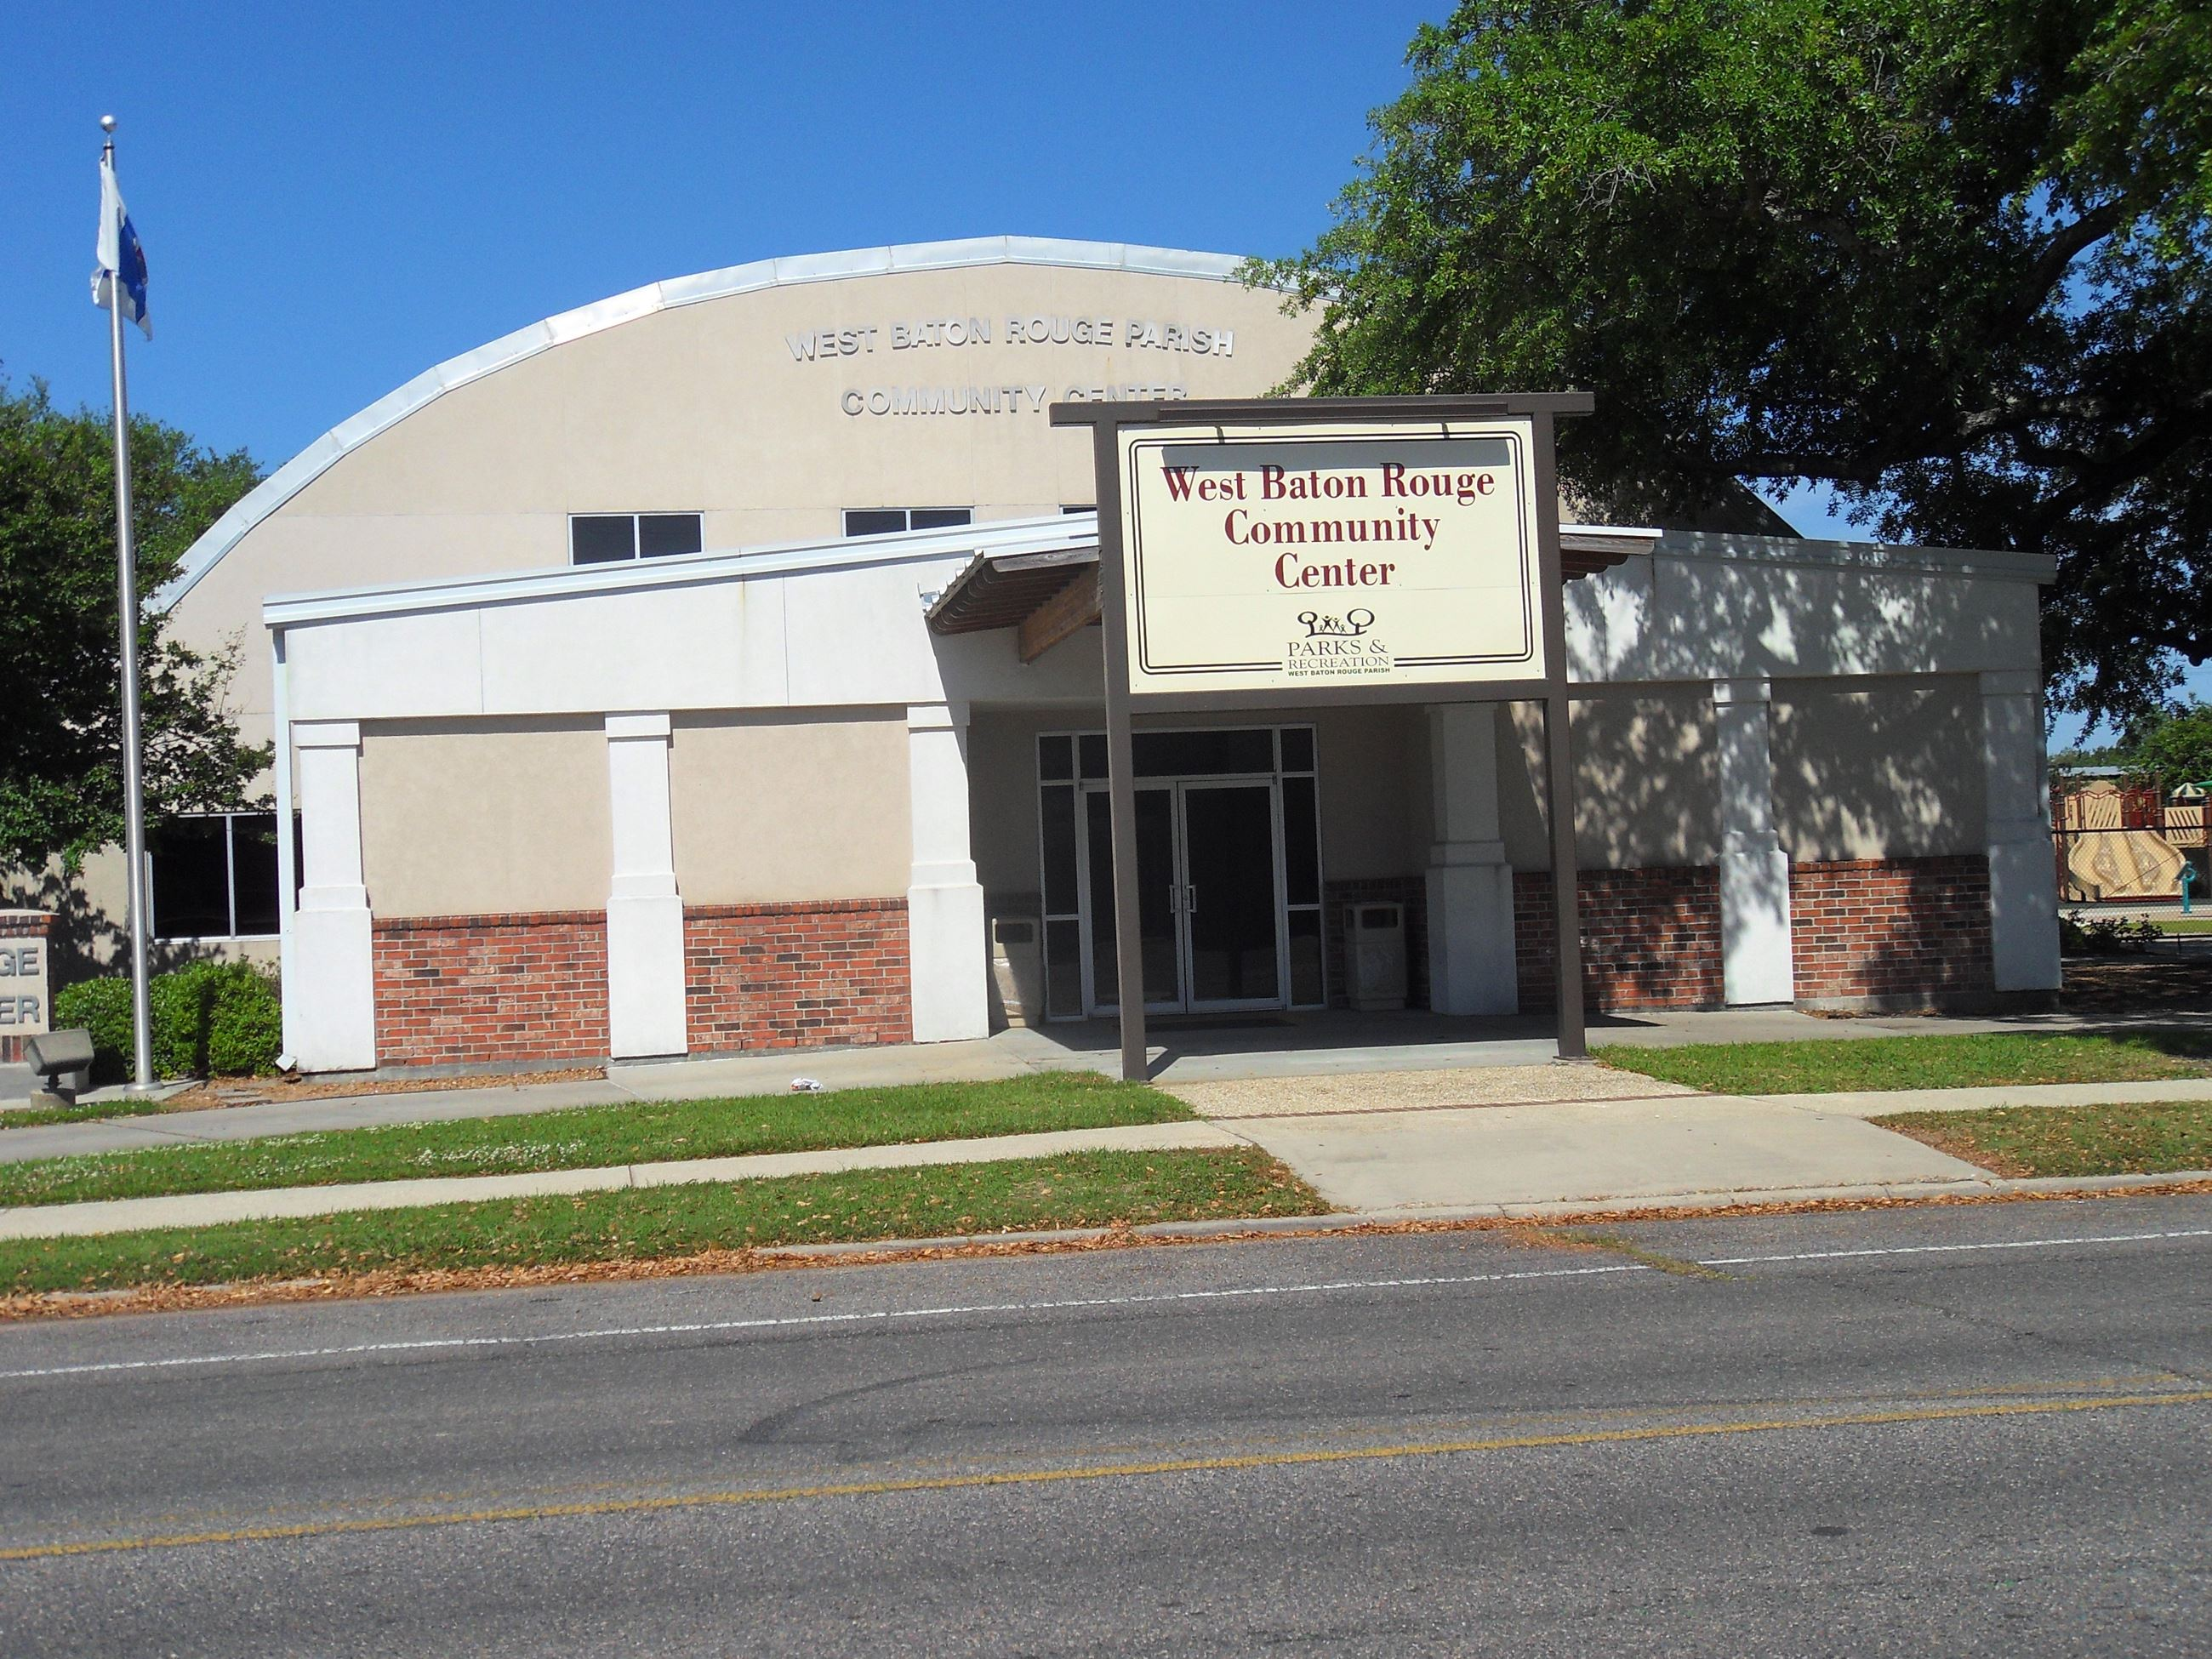 West Baton Rouge Community Center Building